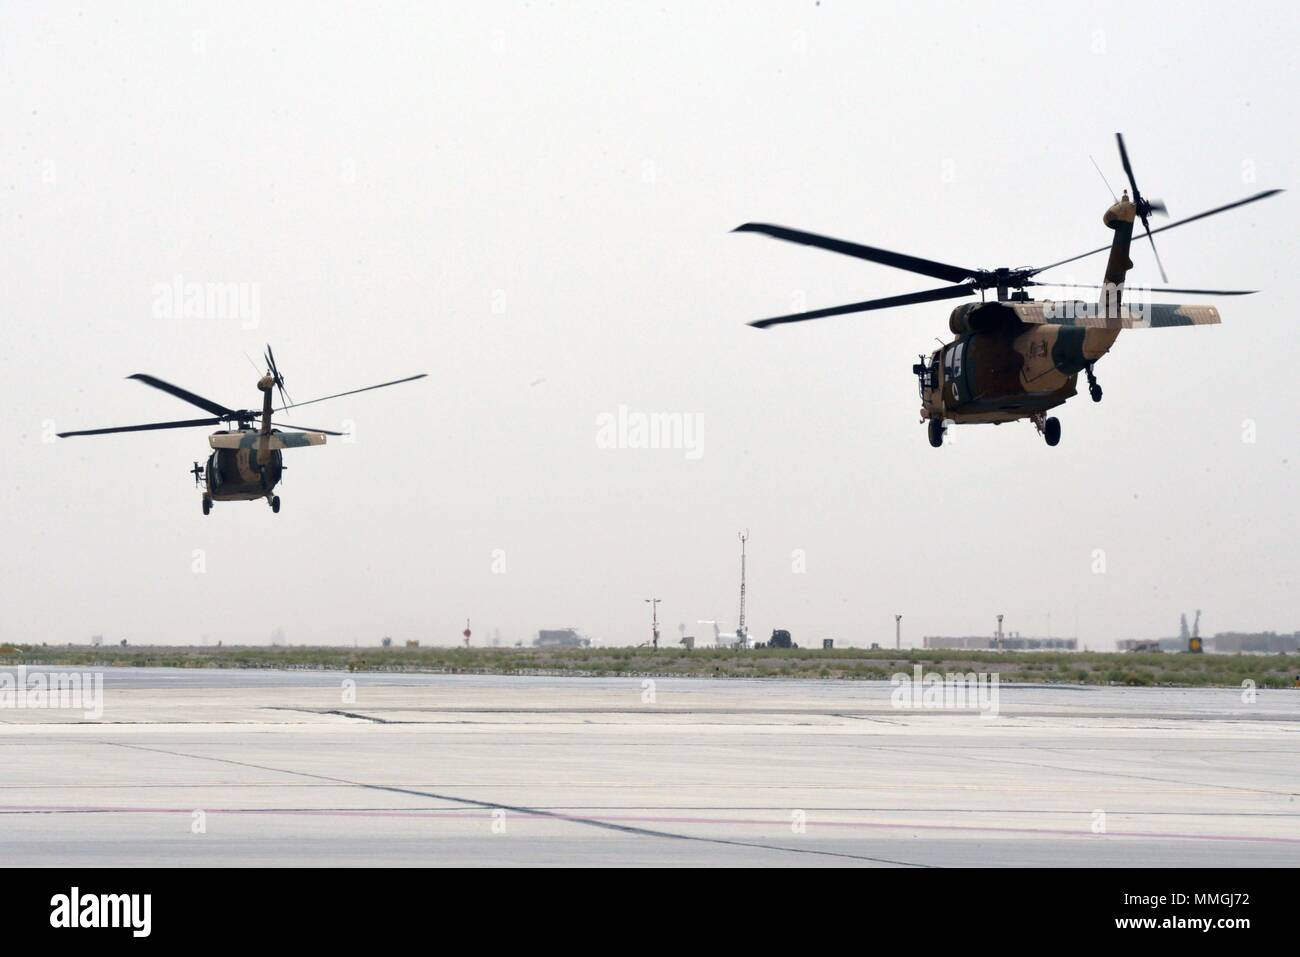 KANDAHAR AIRFIELD (May 8, 2018) -- Two UH-60 Black Hawks, one operated by Afghan air crew members, the other by U.S. advisors, take to the sky for their first flight shortly after a Mission Qualification Training graduation ceremony May 8, 2018, Kandahar Air base, Afghanistan. Thirty one individuals graduated during the ceremony making them the first fully qualified UH-60 Afghan air crew members. (U.S. Air Force photo/1st Lt. Erin Recanzone) - Stock Image